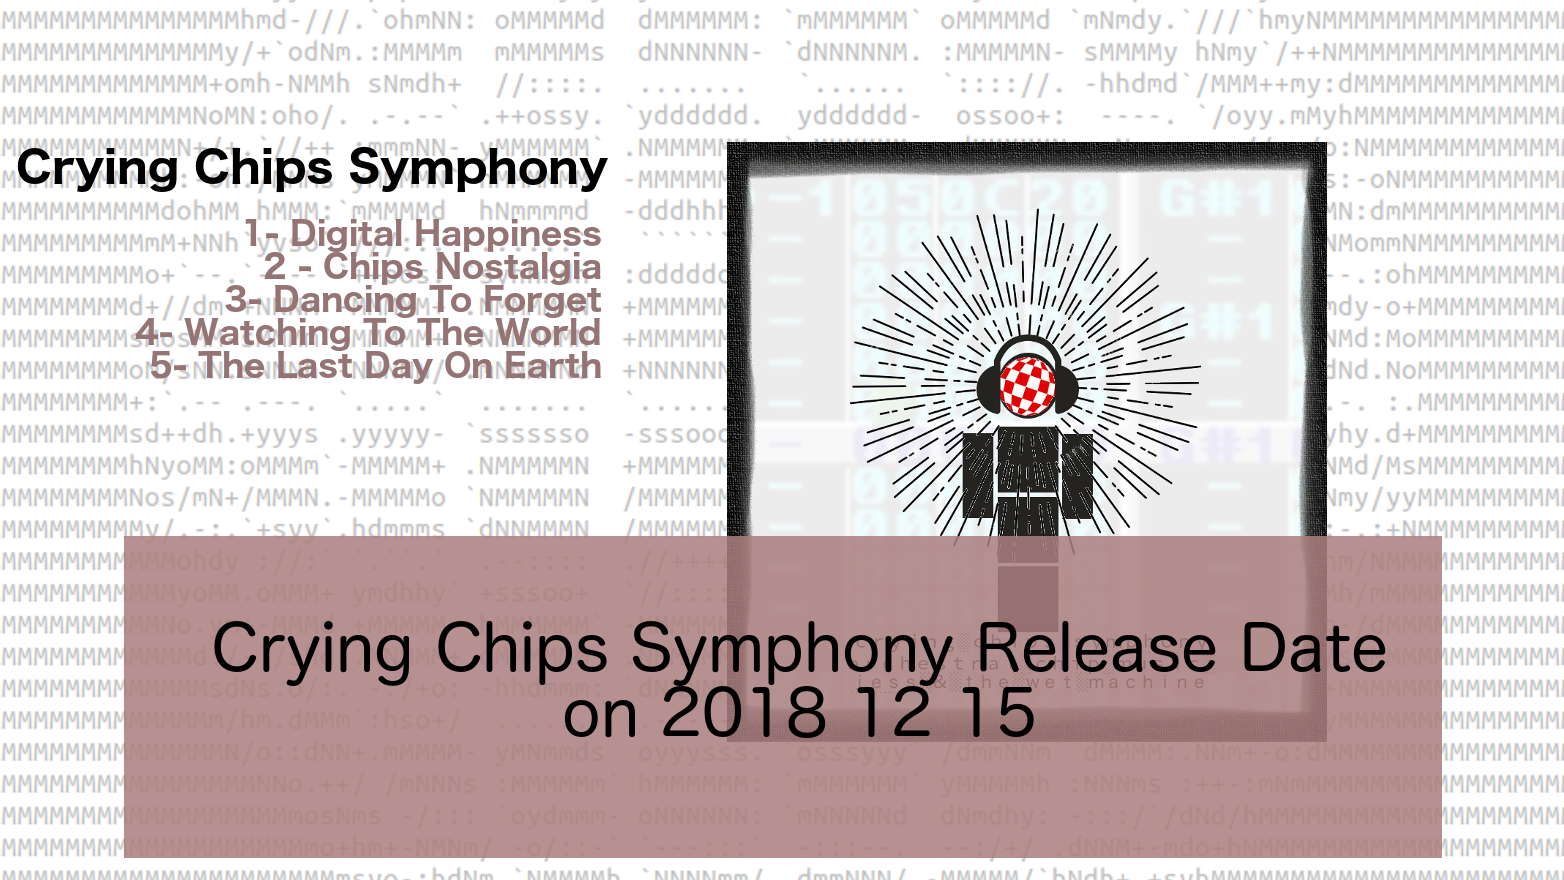 Premiere of the album Crying Chips Symphony, 2018 12 15 @ 10am